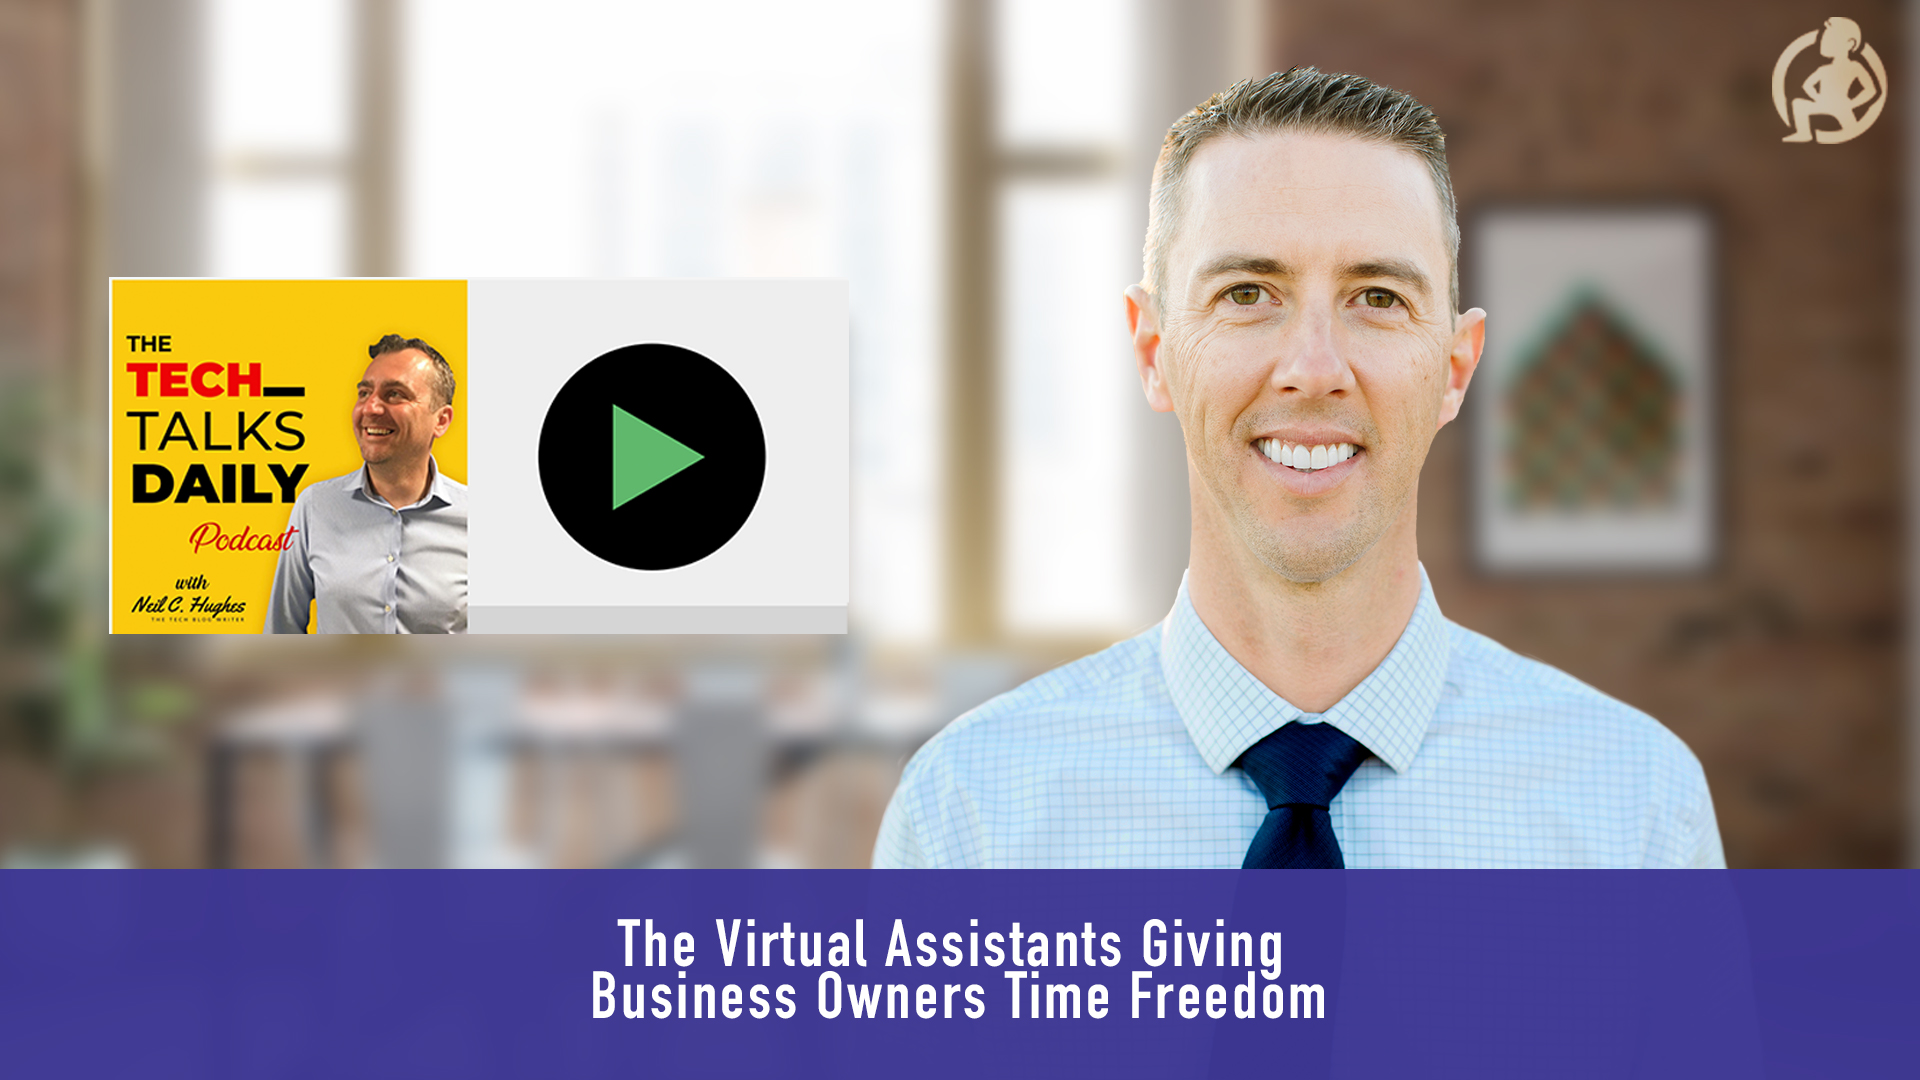 The Virtual Assistants Giving Business Owners Time Freedom